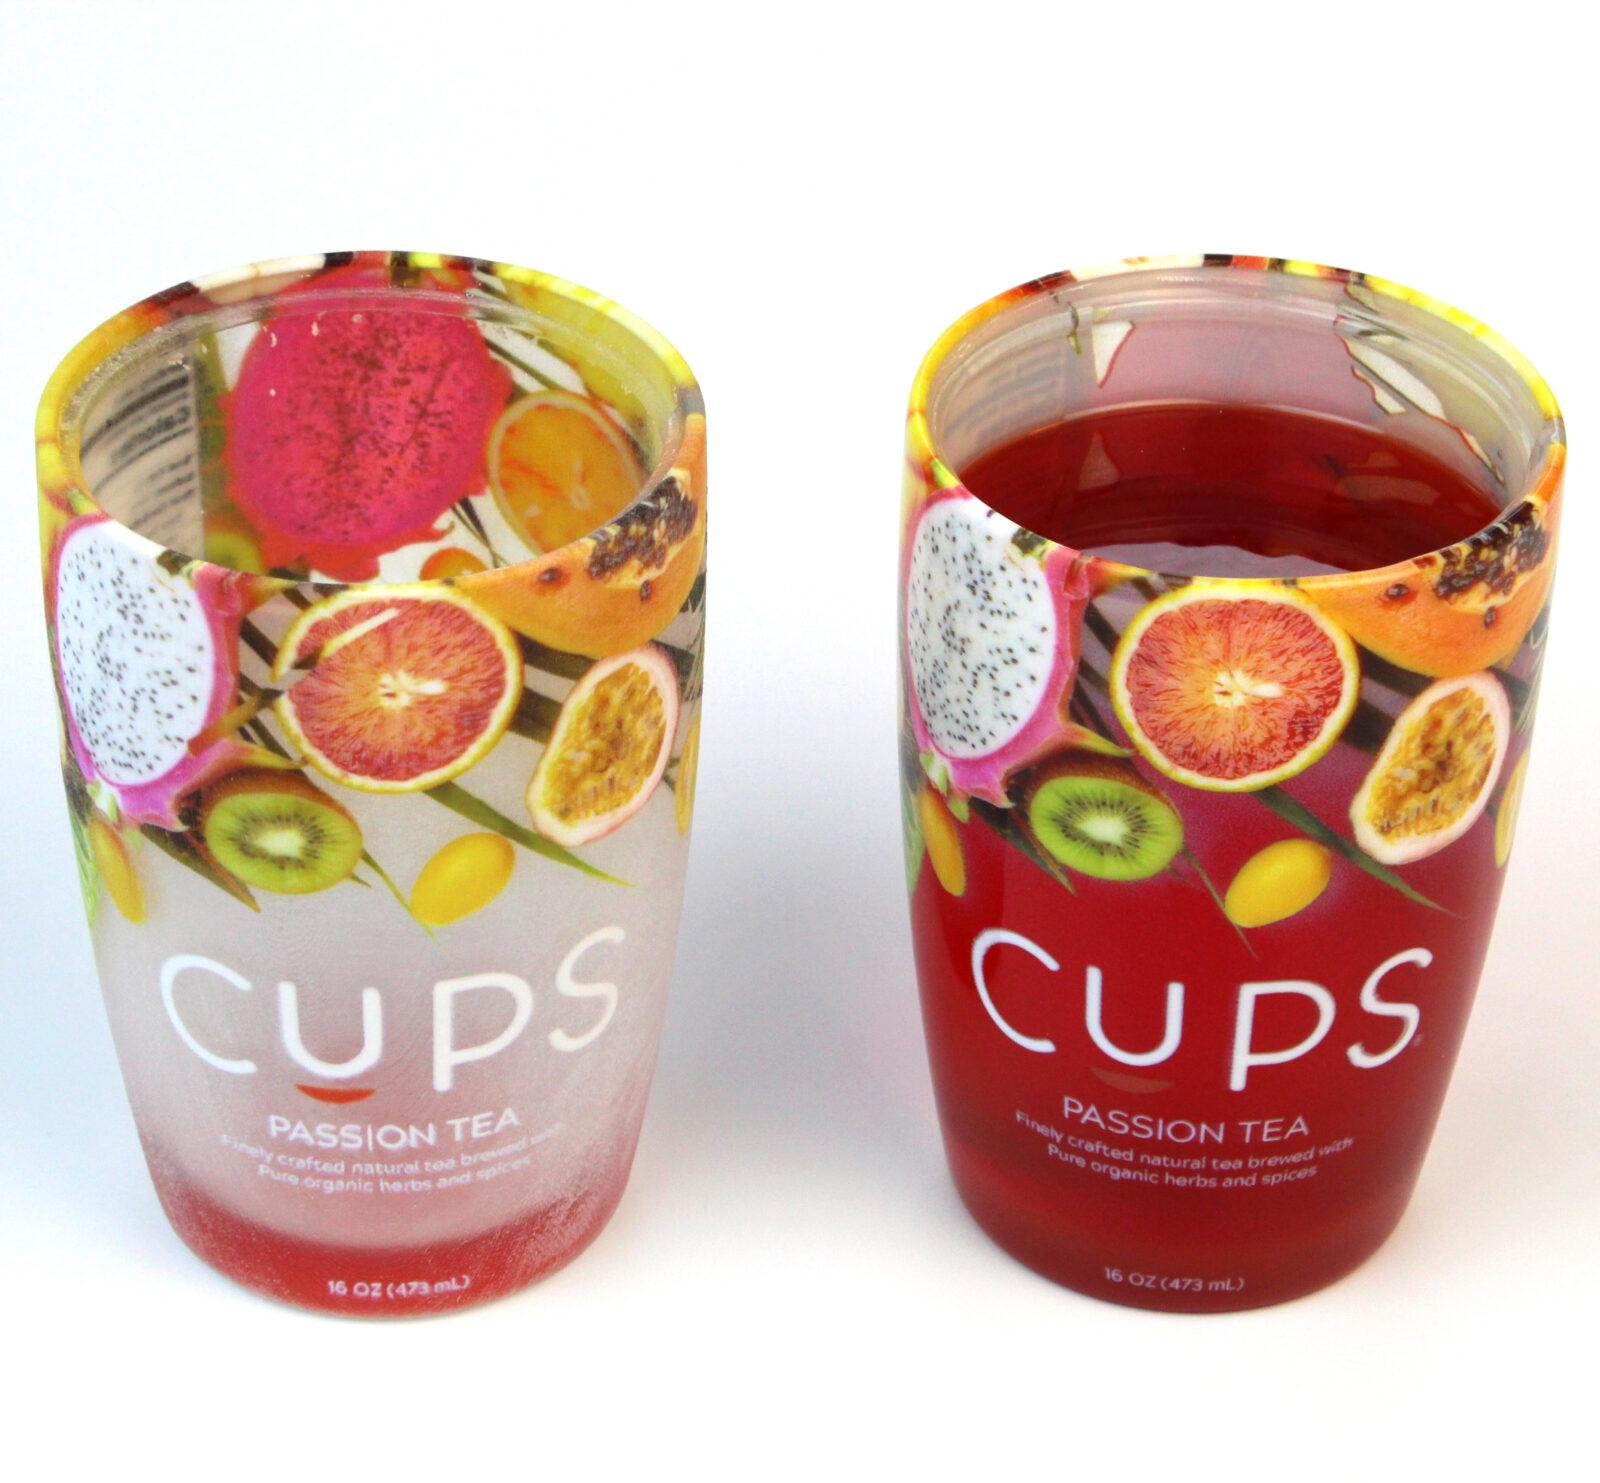 Retail drink concept that came to fruition in just 2 weeks, from design to full-color prototype.